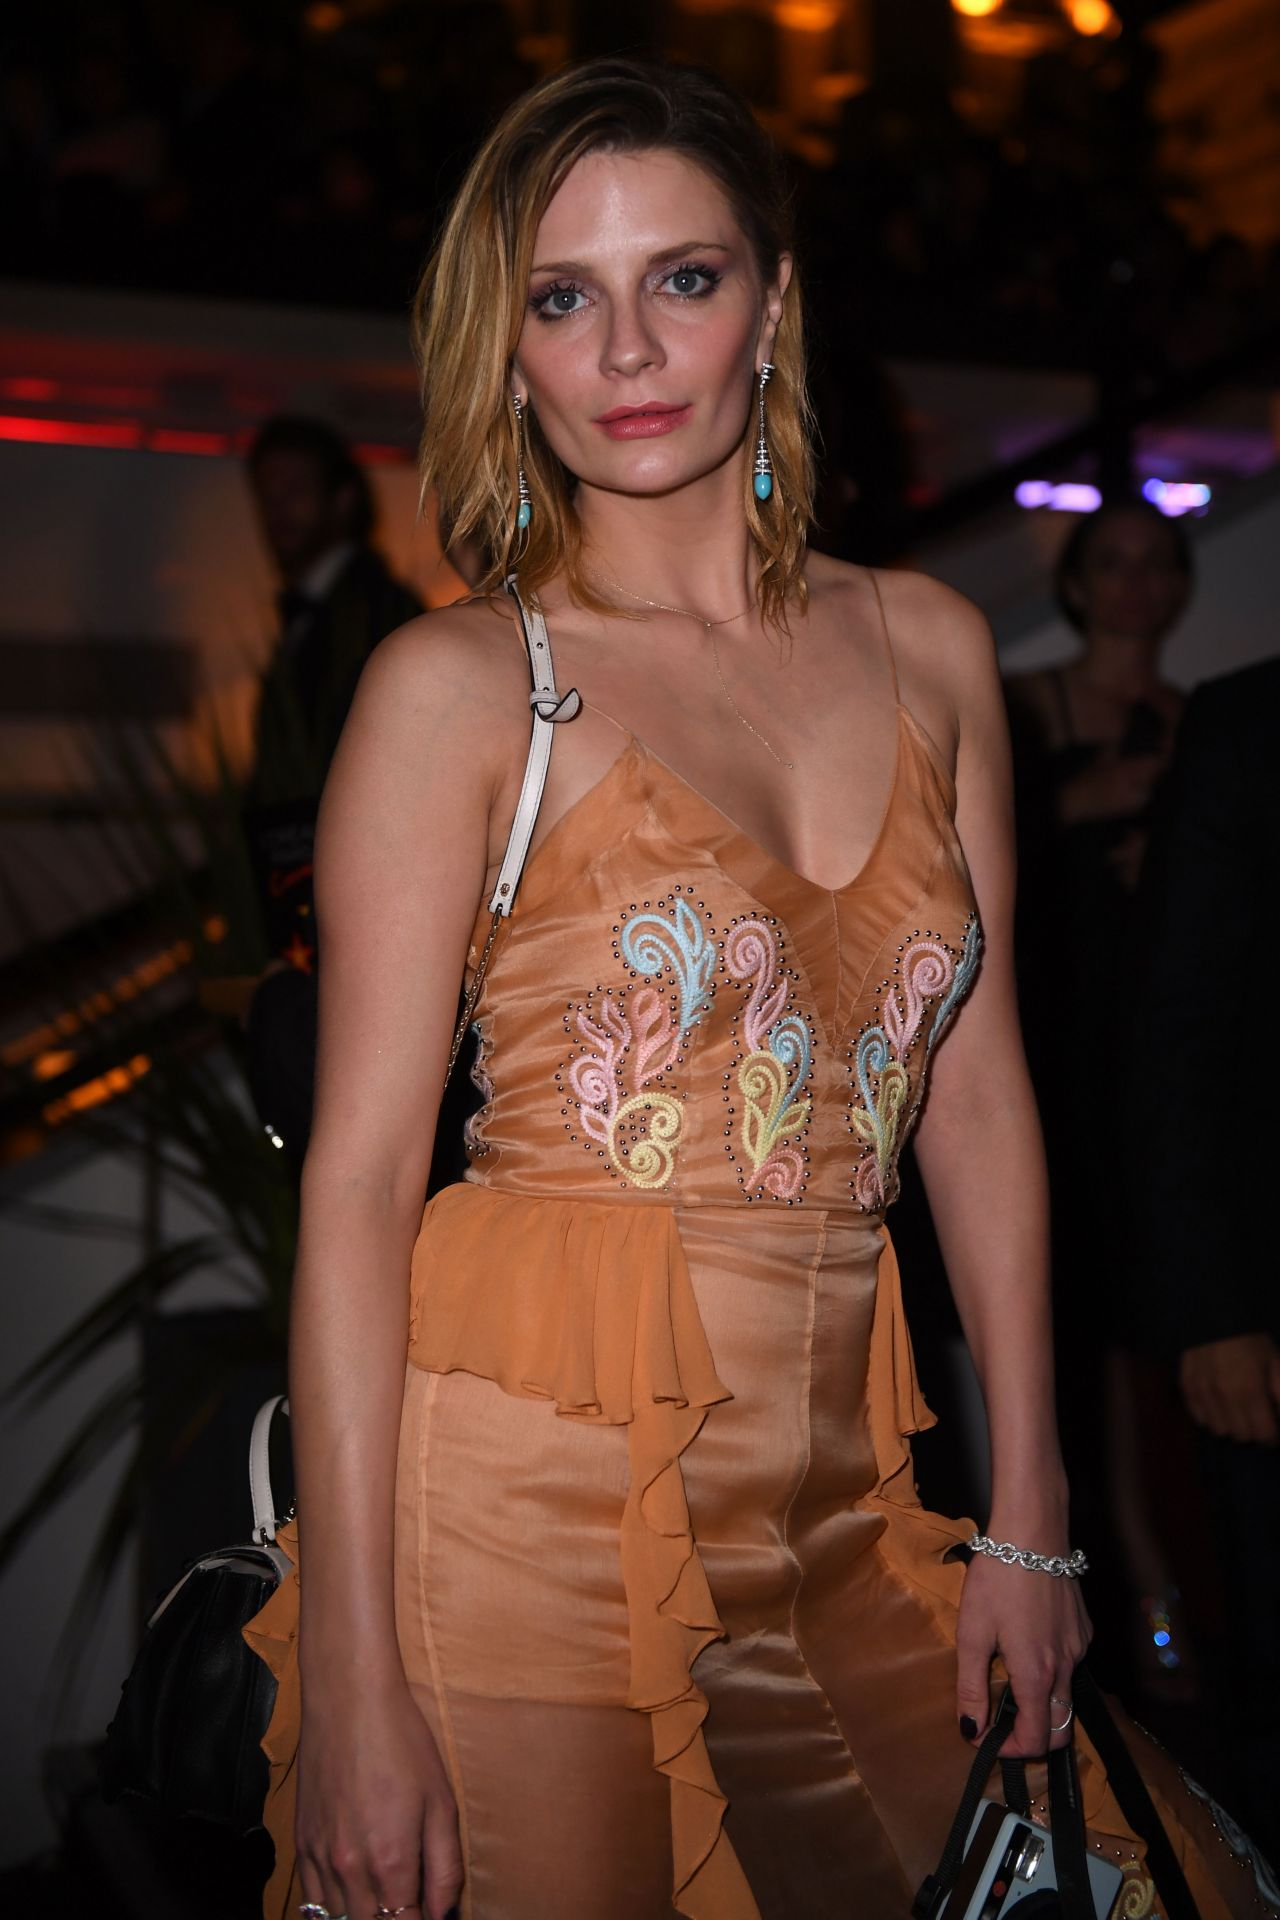 Mischa Barton at L'Oreal 20th Anniversary Party in Cannes ...